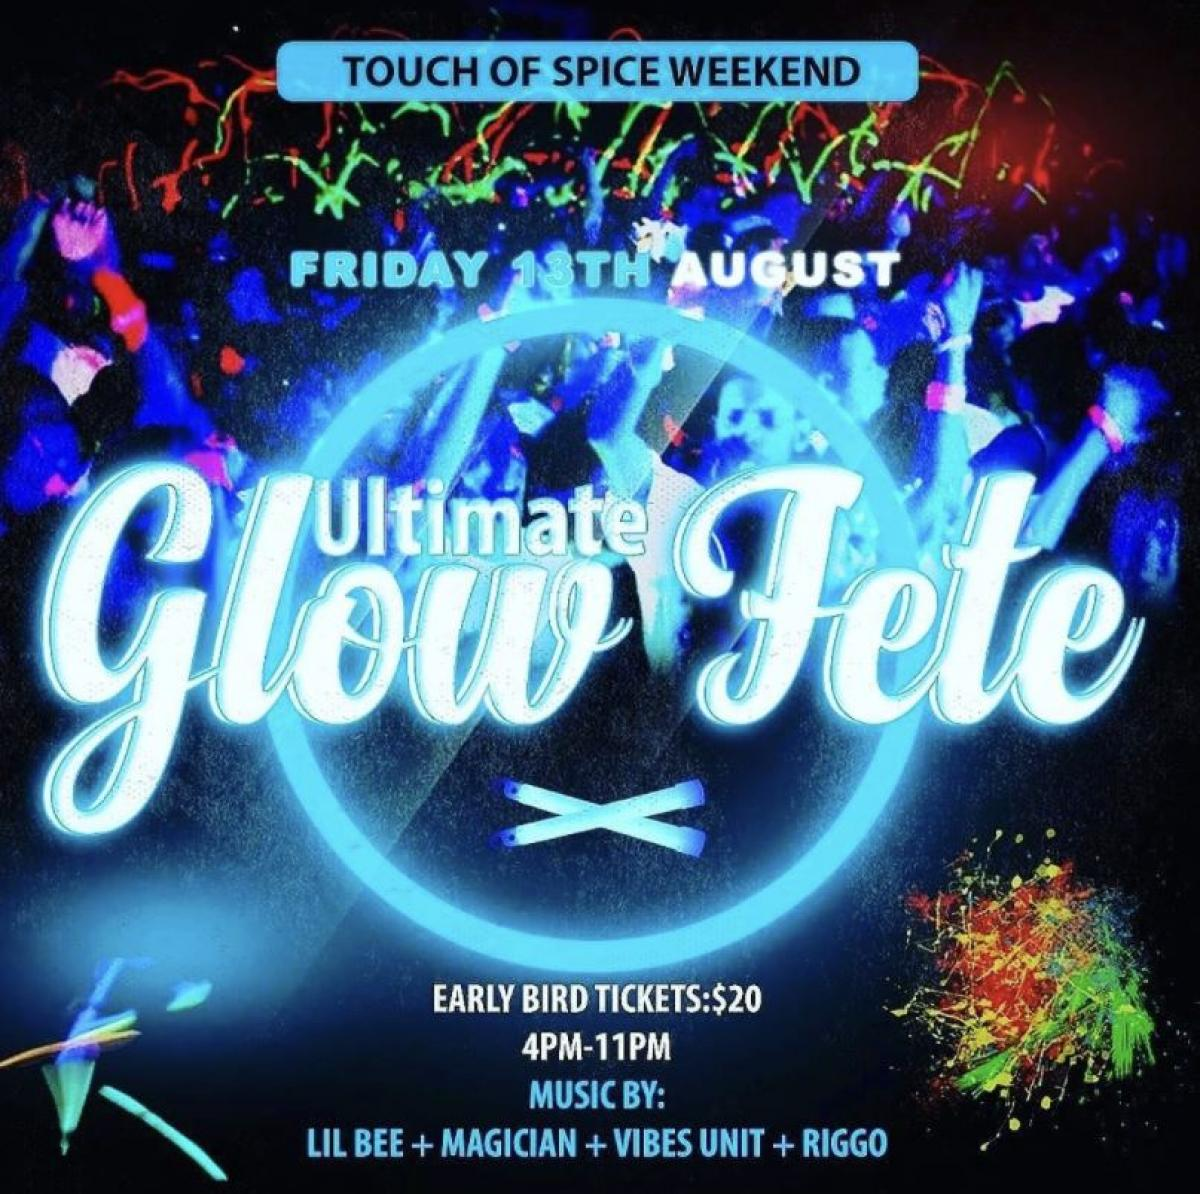 Touch Of Spice Weekend: Friday Night The Ultimate Glow Fete flyer or graphic.